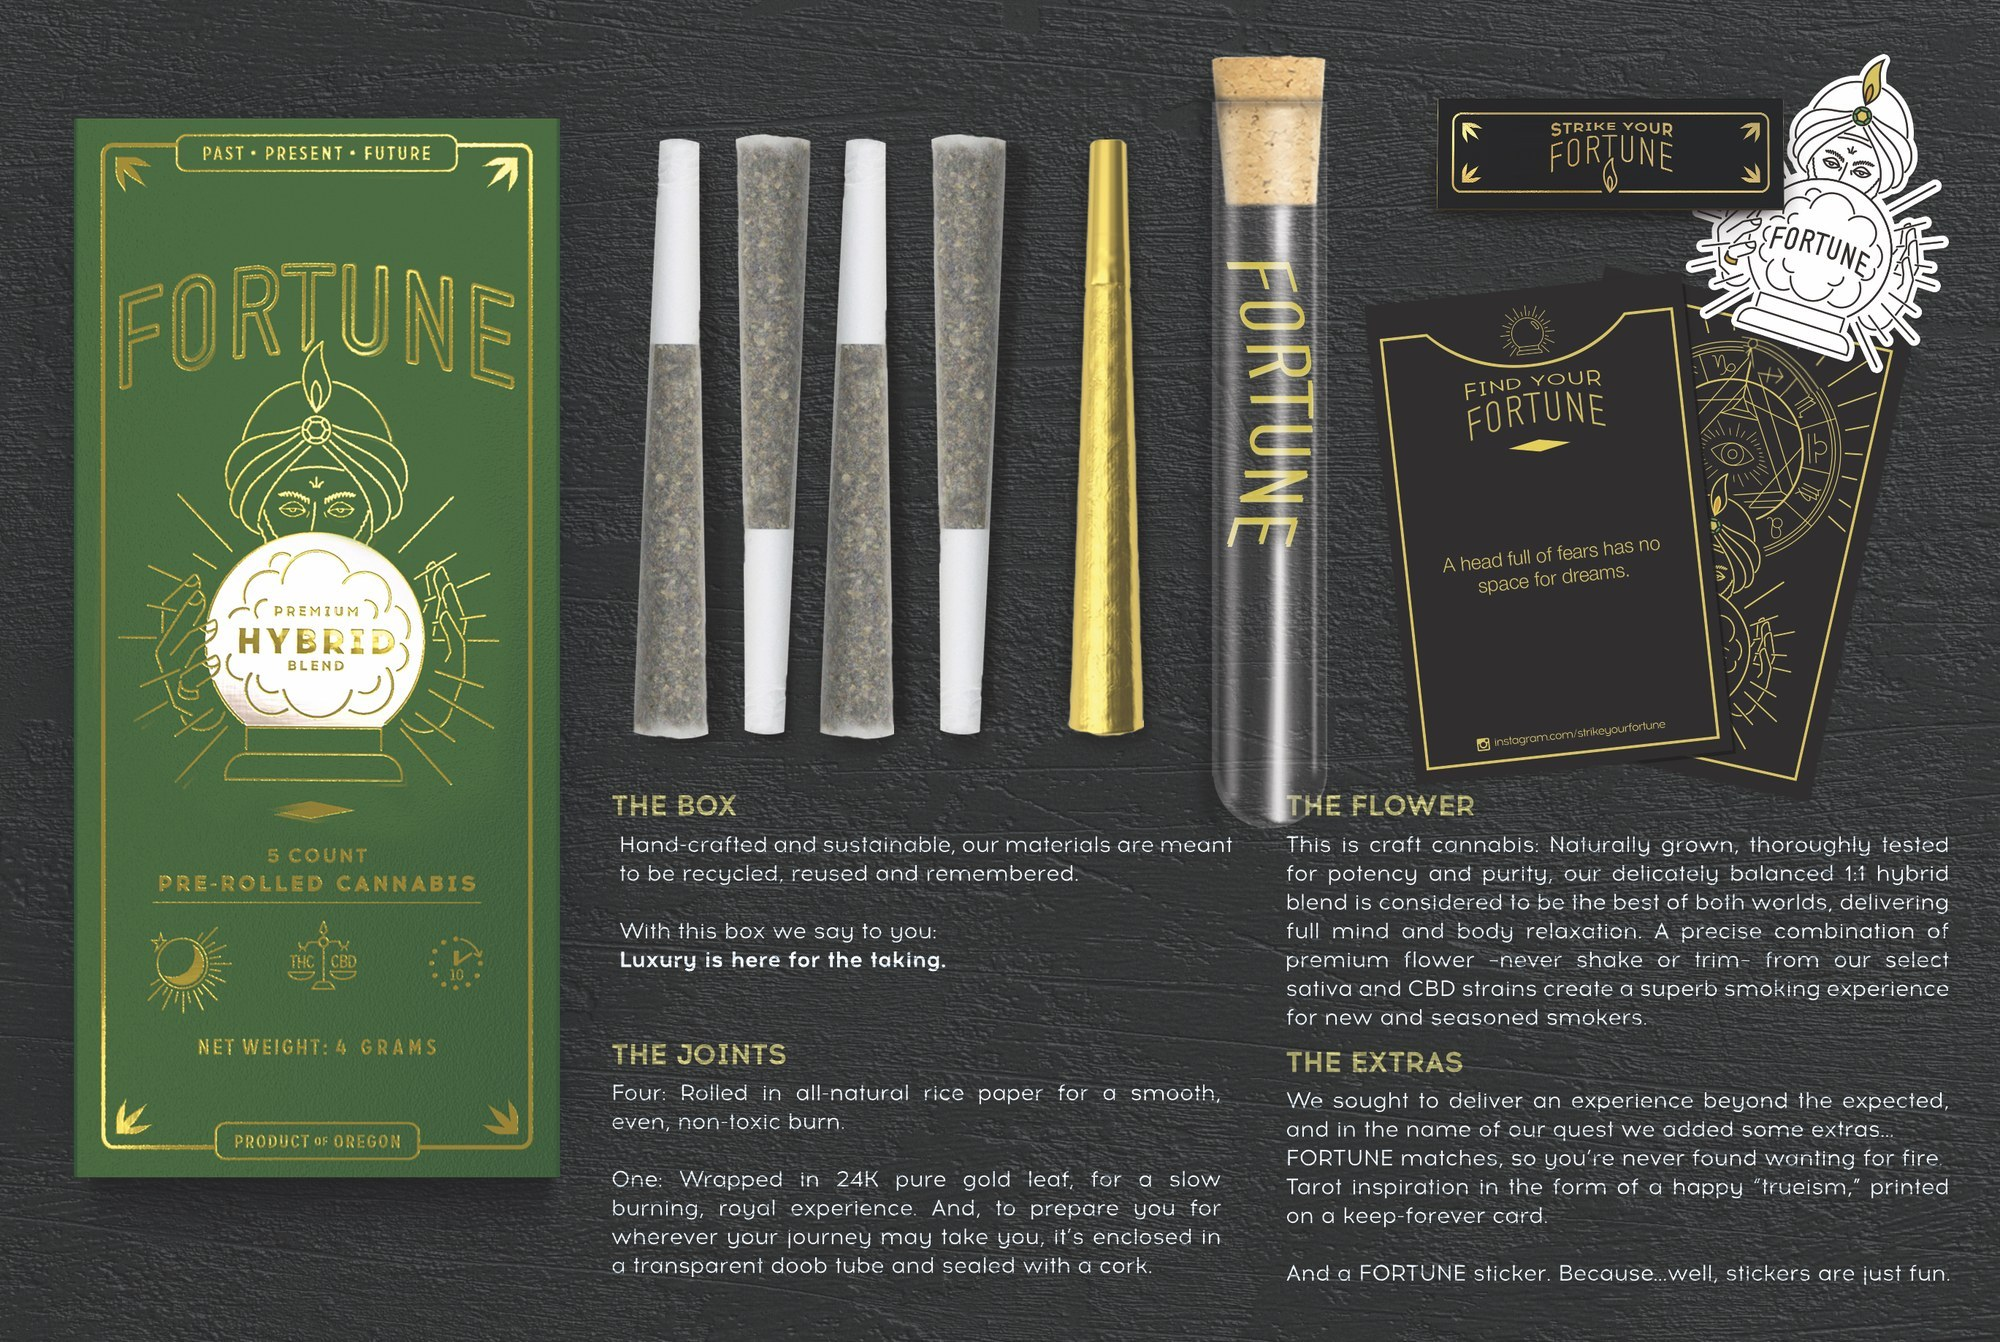 One Company Wants to be Known for the 'Best' Pre-Rolls in Oregon